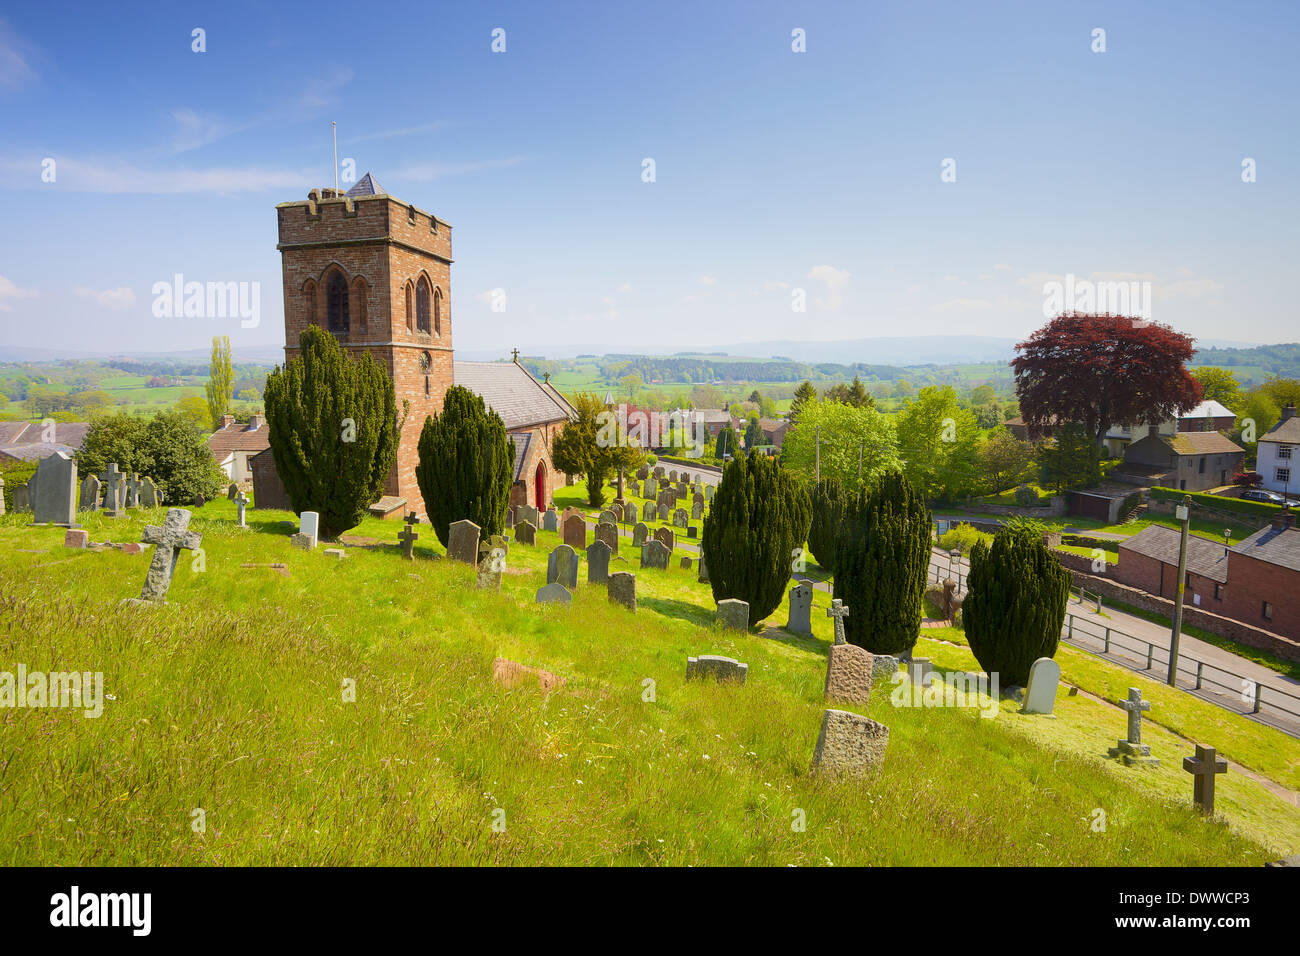 St. Nicholas Church rural church Lazonby, Cumbria, England, United Kingdom. Looking East over the Eden Valley. - Stock Image